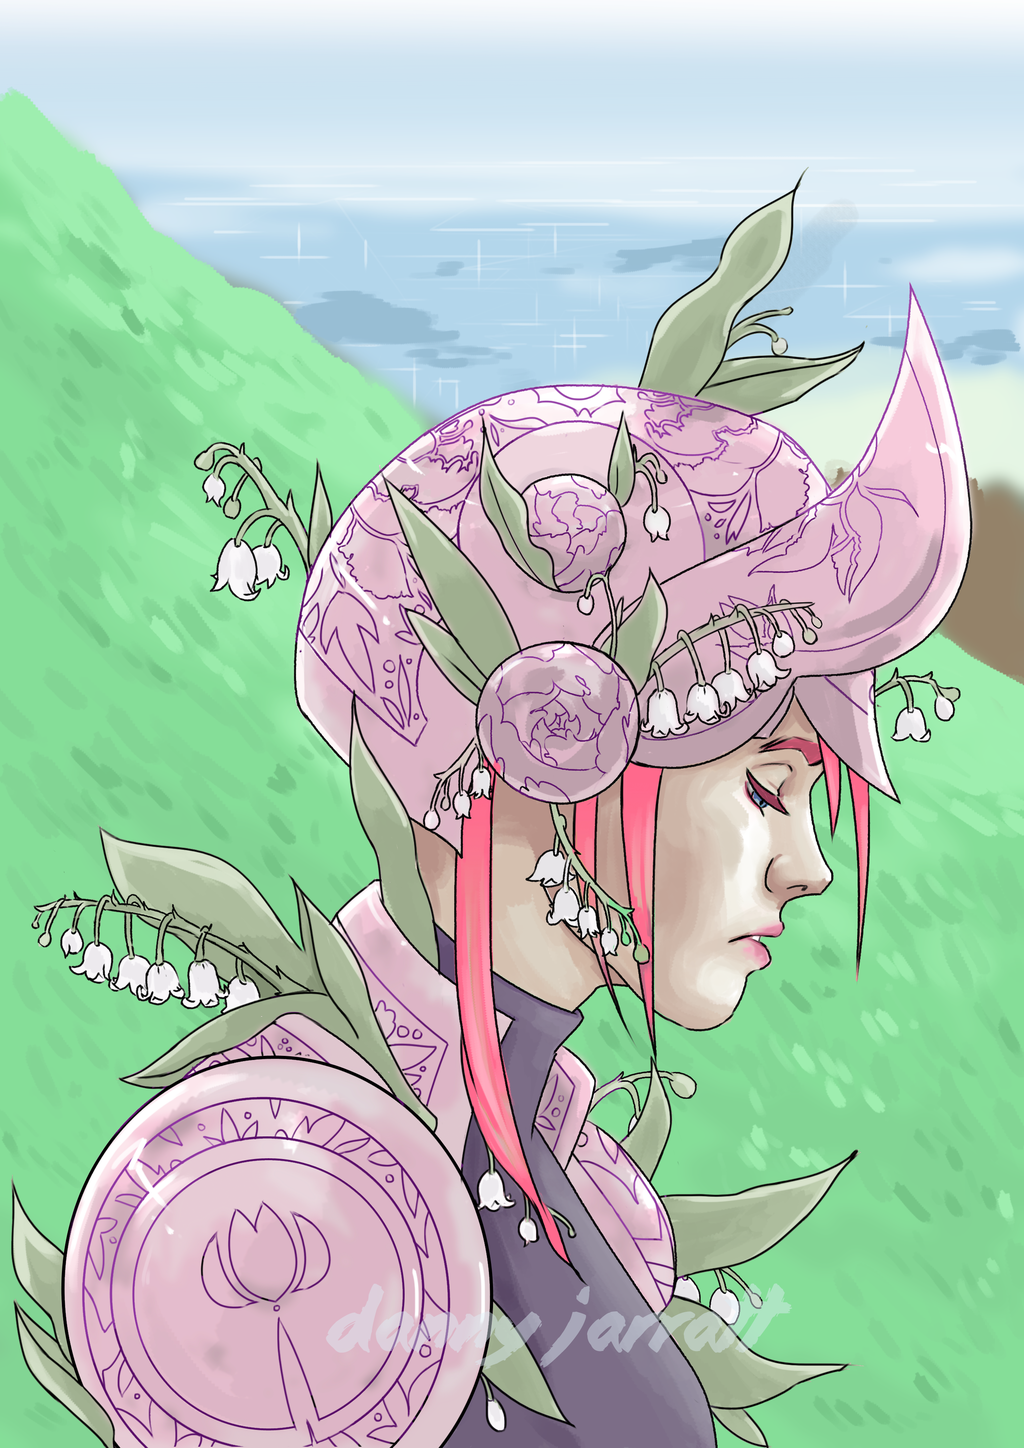 Most recent image: Flower Knight